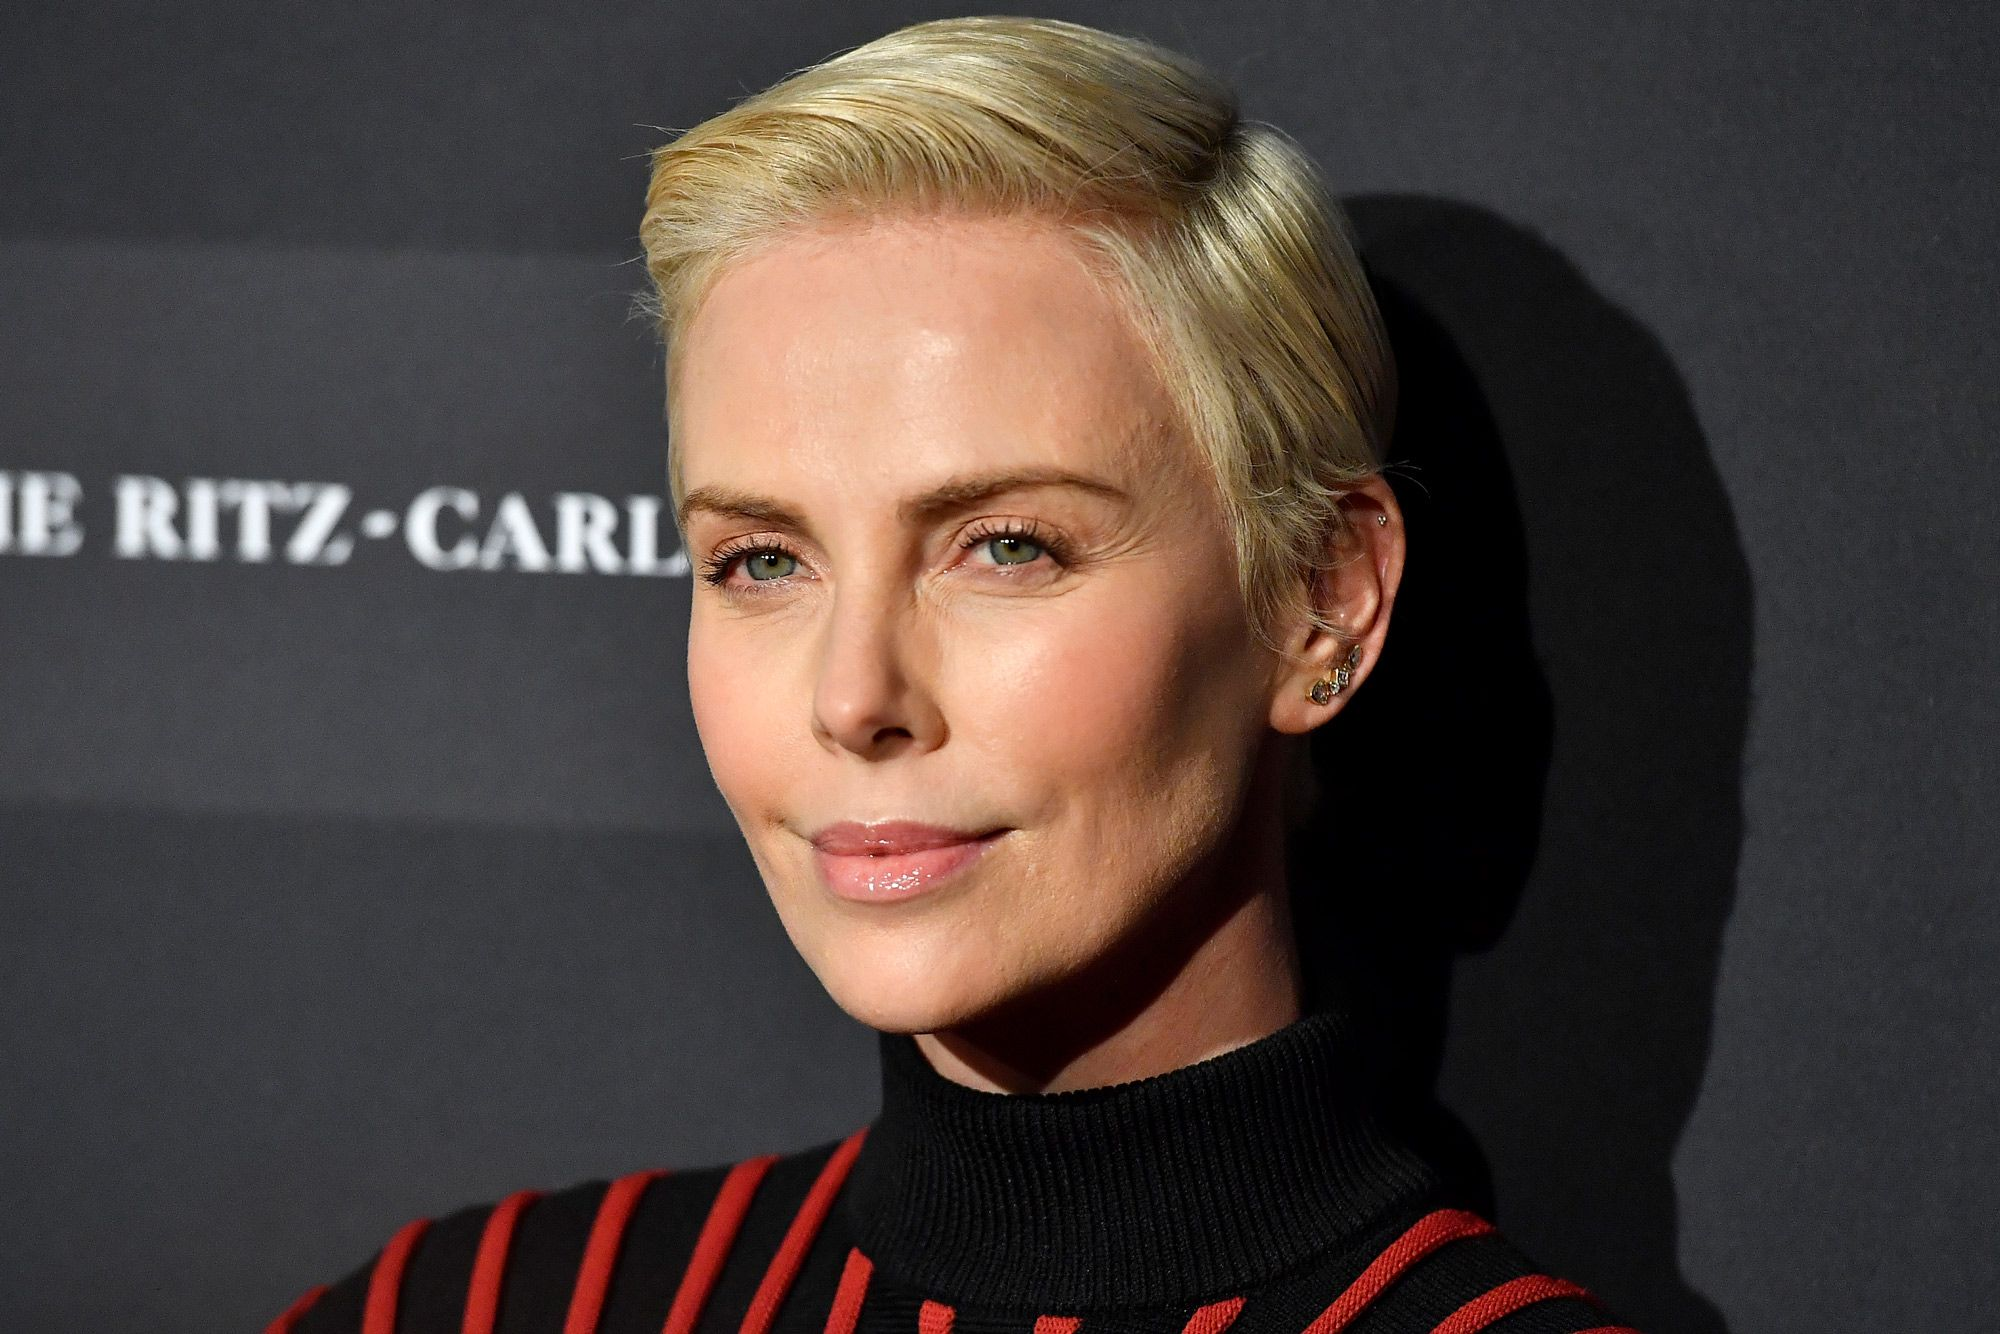 Charlize Theron Says Shes Struggling To Balance